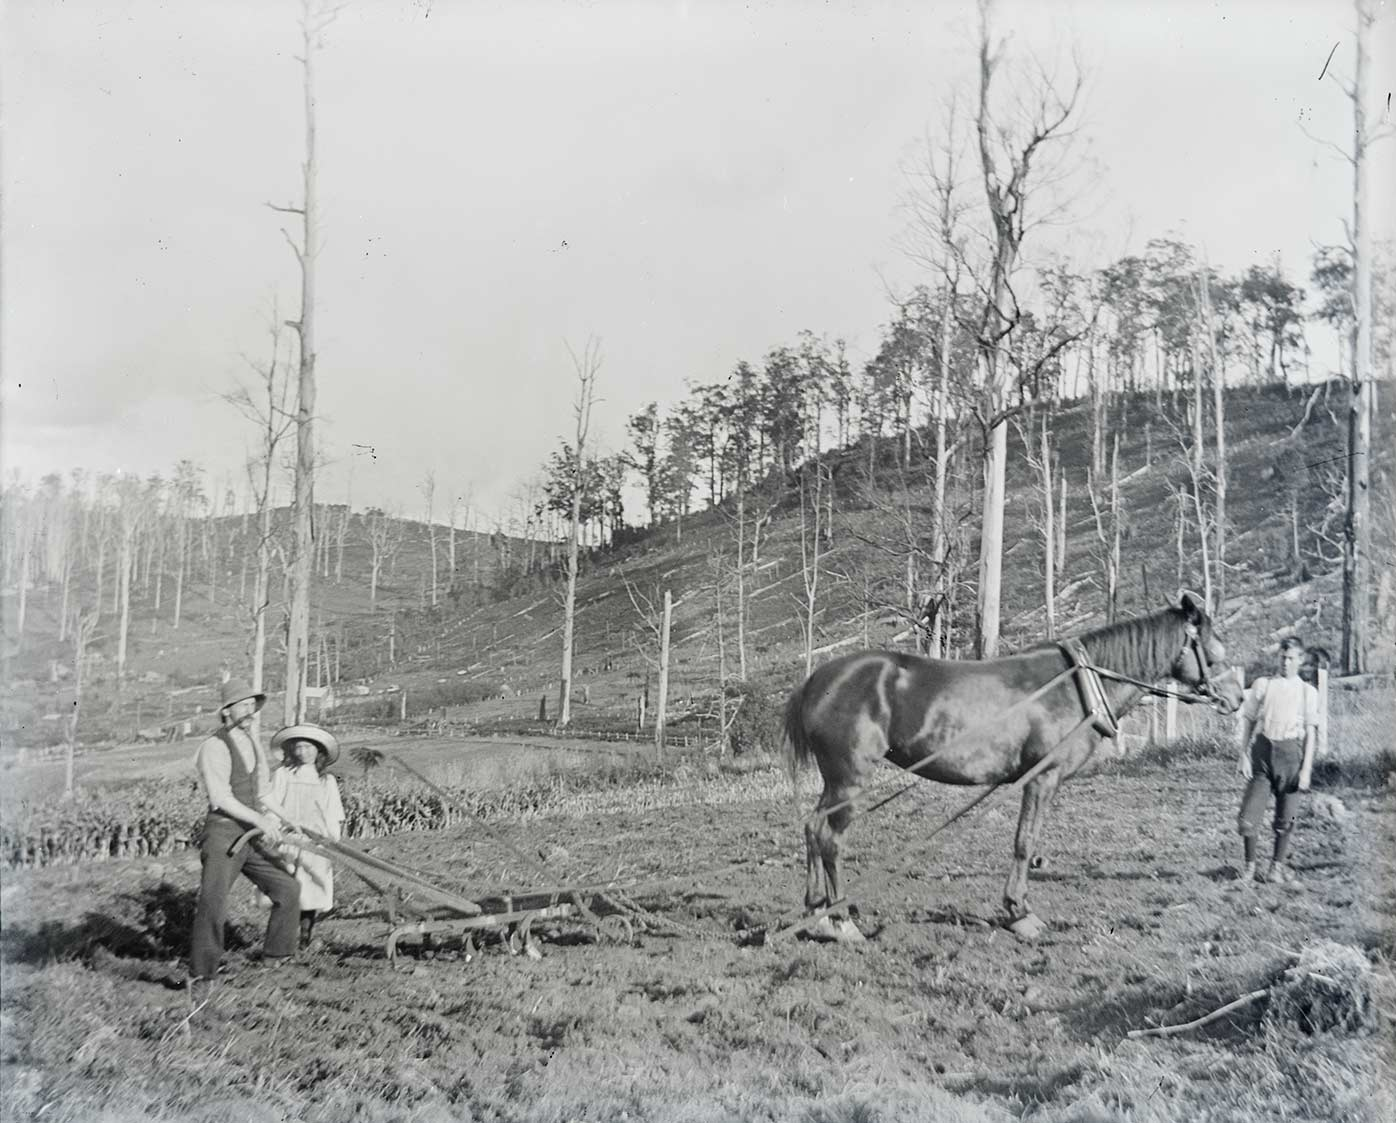 Black and white photo of a man tending a horsedrawn plough. A girl stands beside the man. Many dead trees stand on hills in the background.